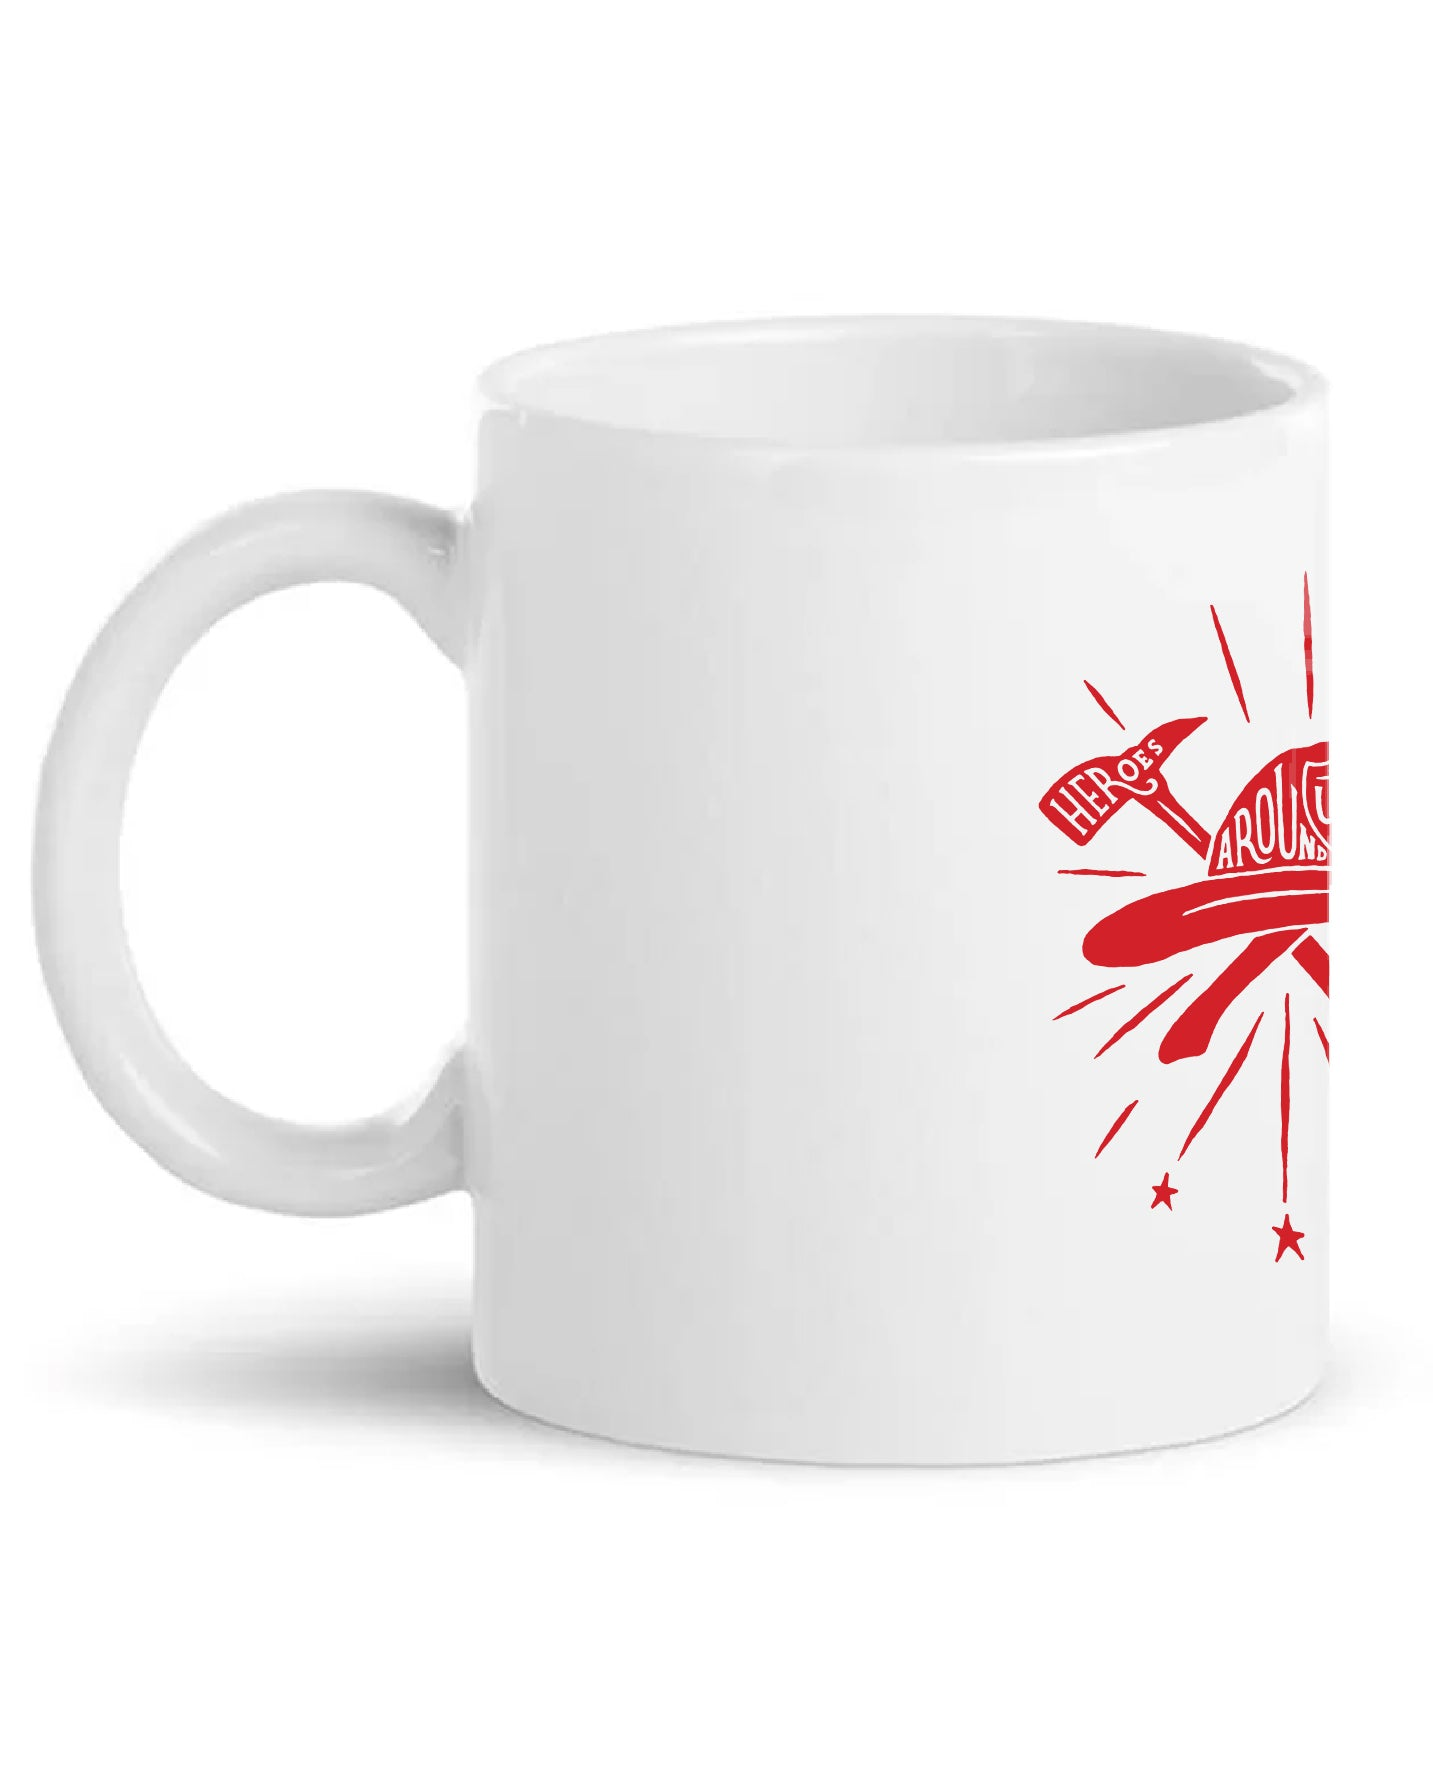 HEROES ARE ALL AROUND US Coffee Mug